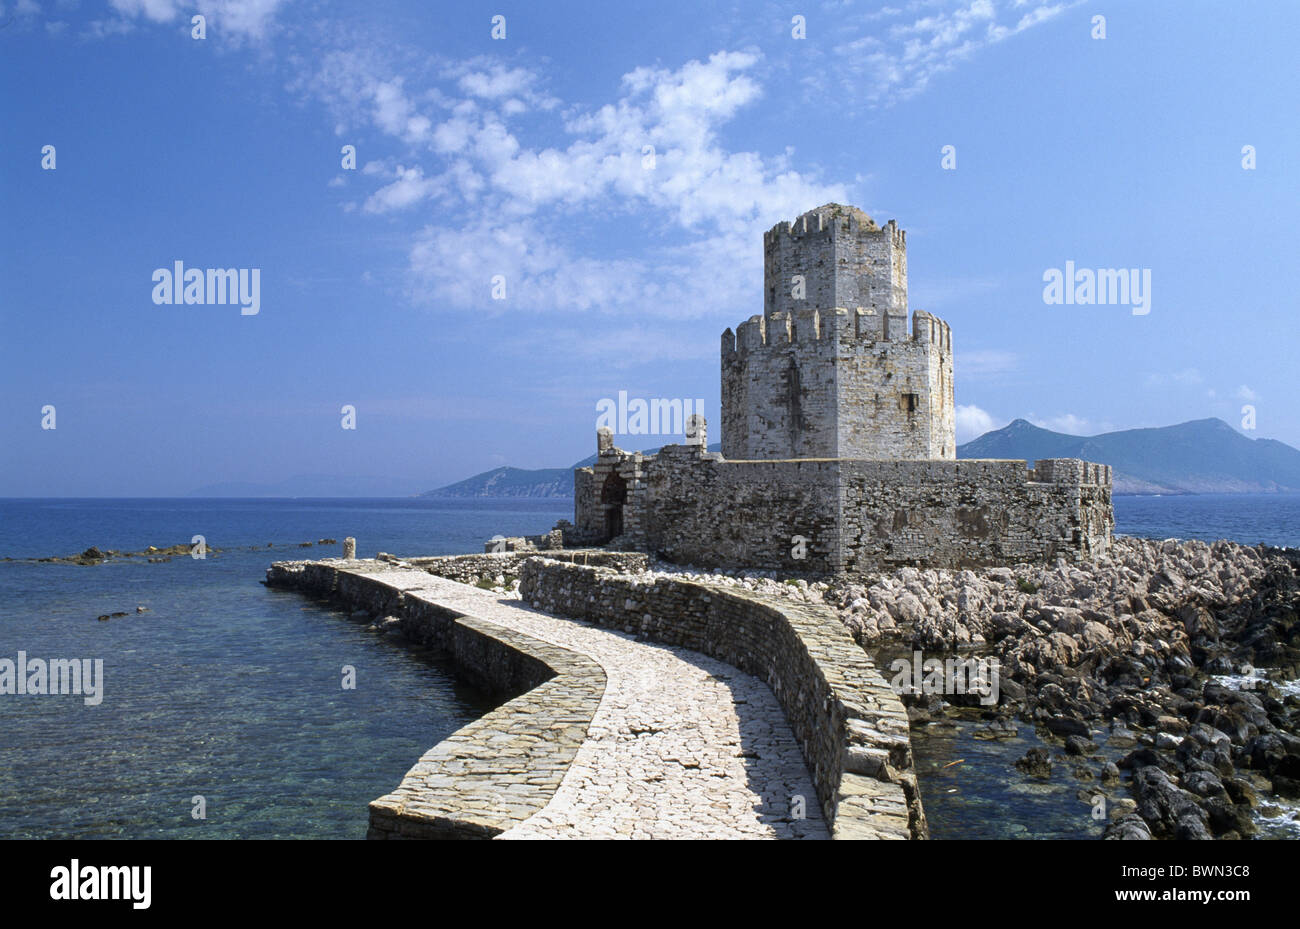 Greece Europe Venetian fortress Methoni Peloponnesus Peloponnese castle Europe wall sea Messenia travel wa - Stock Image